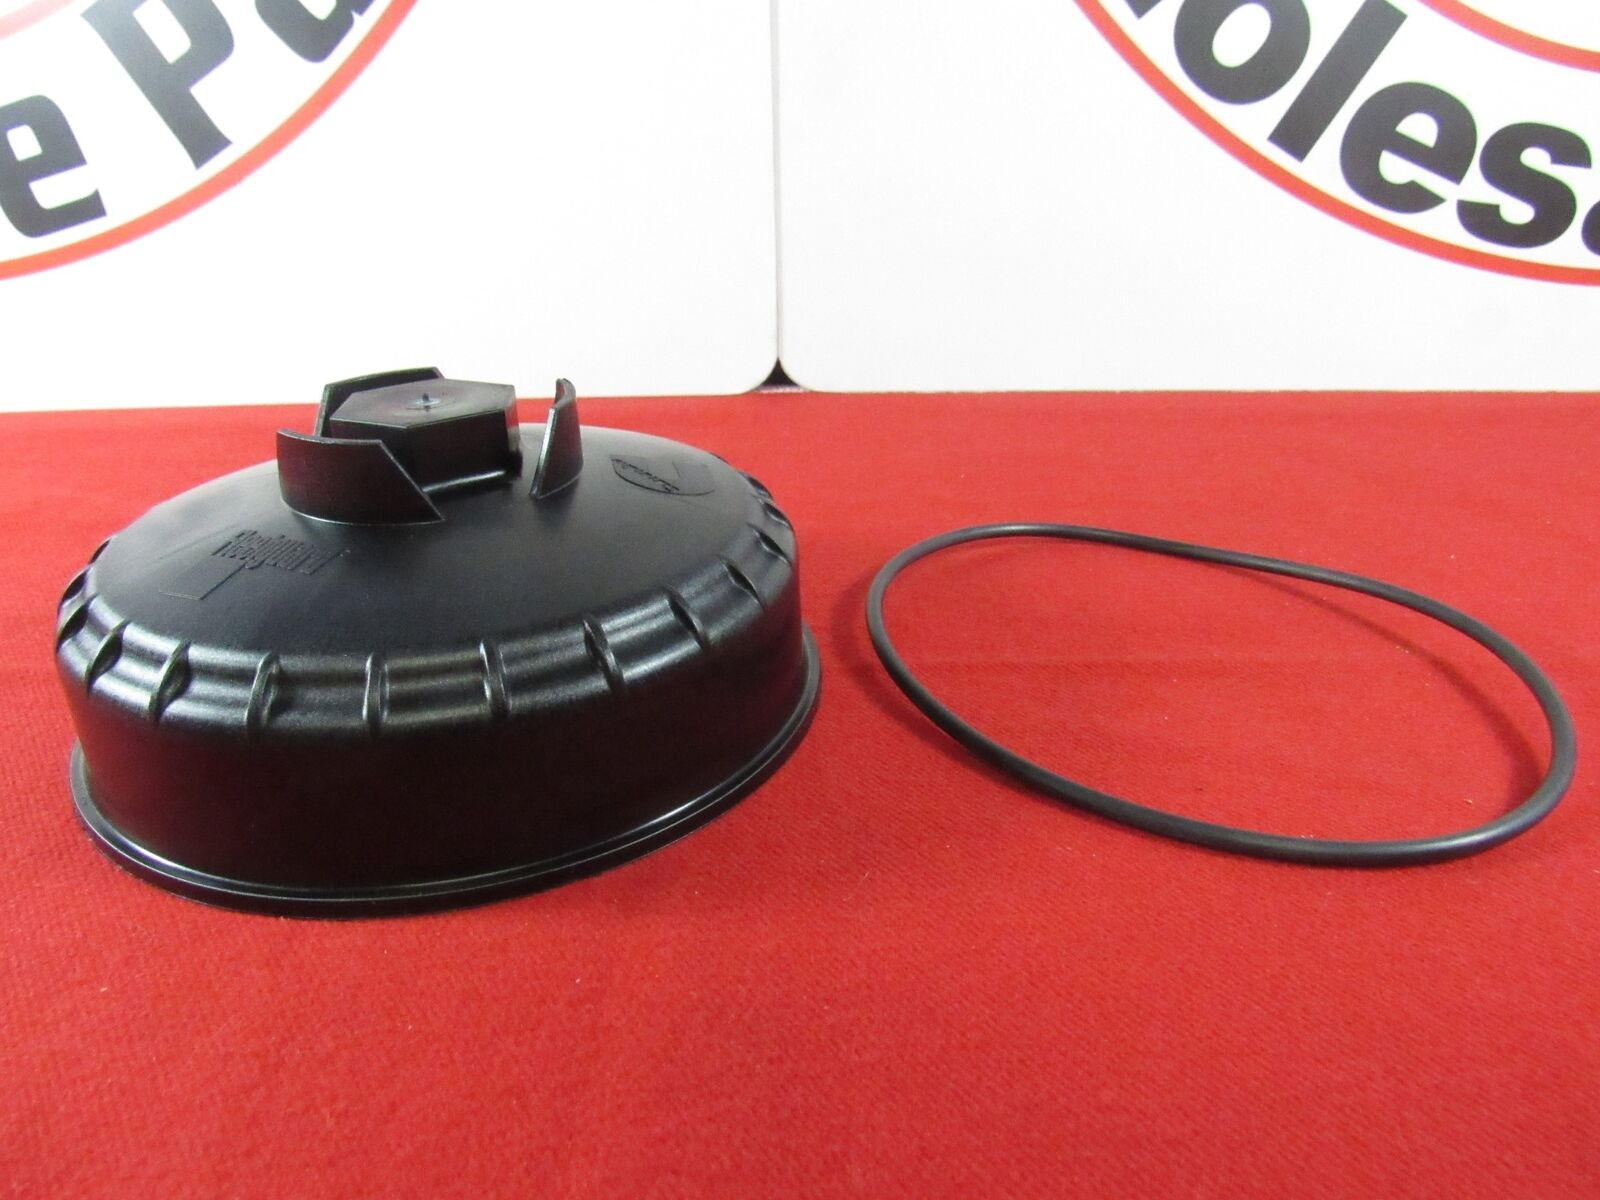 Dodge Ram Cummins 67l Fuel Filter Canister Housing Cover Lid Cap 2010 3500 Location 1 Of 7free Shipping